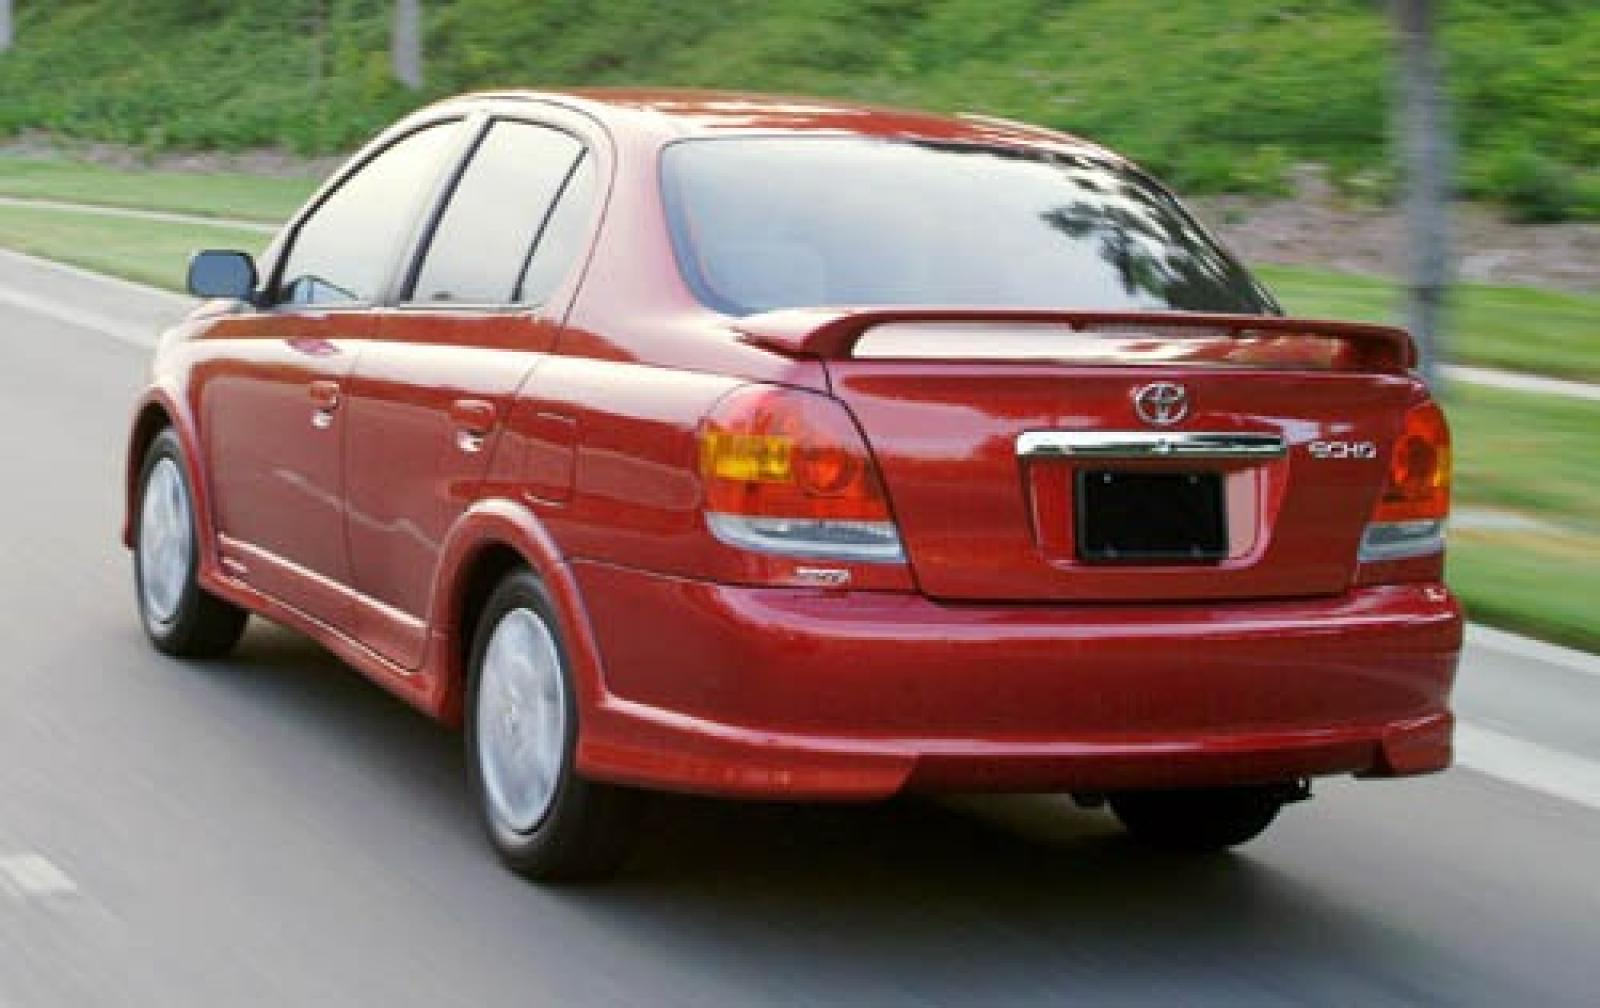 2005 toyota echo information and photos zombiedrive. Black Bedroom Furniture Sets. Home Design Ideas